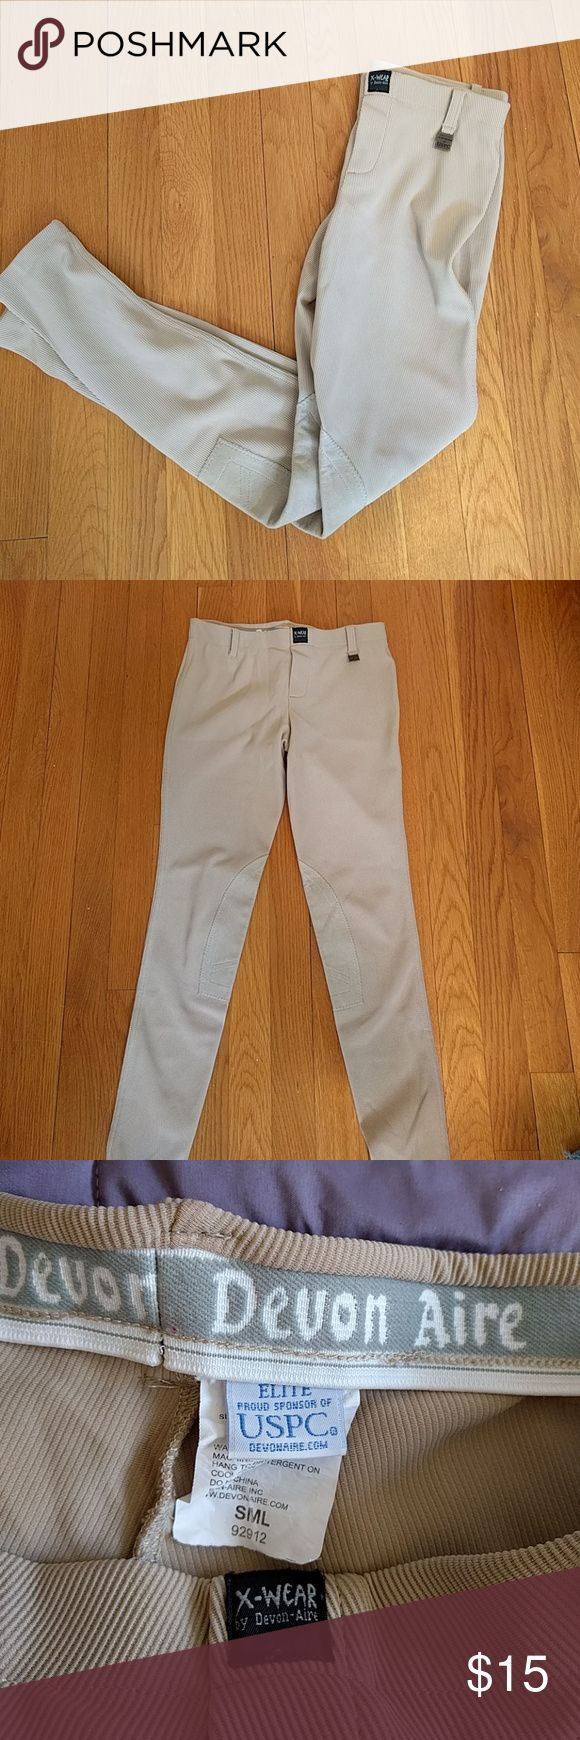 Horseback riding breeches Tan breeches Pants